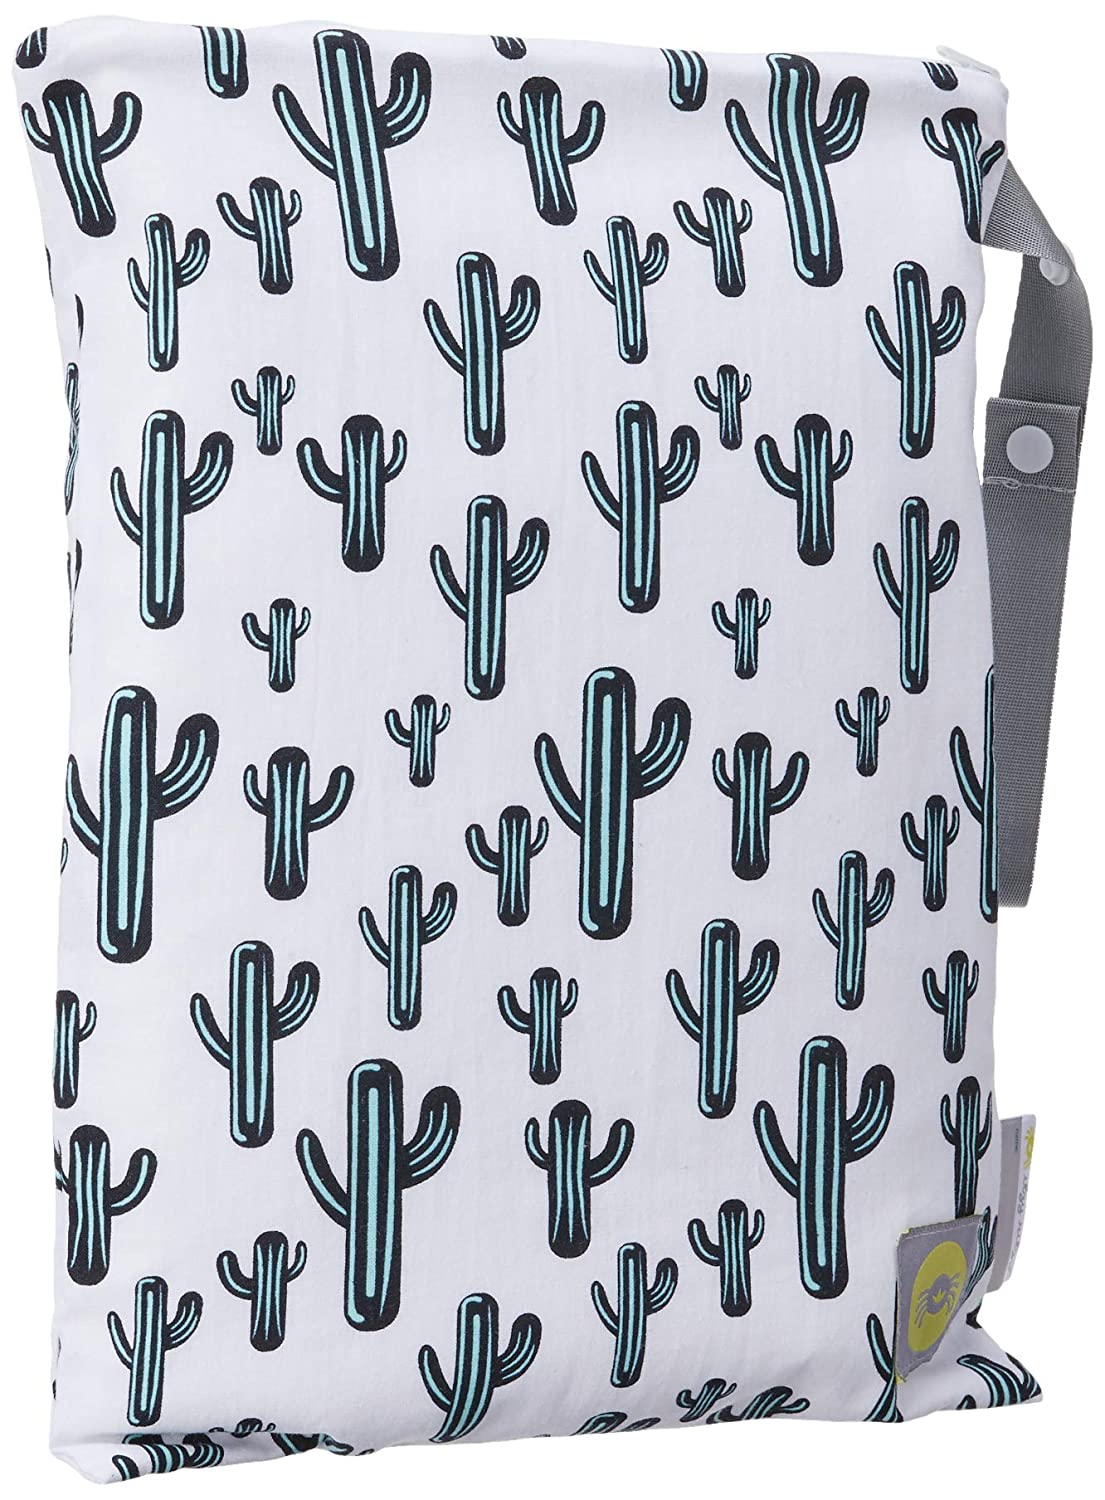 """Itzy Ritzy Sealed Wet Bag with Adjustable Handle – Washable and Reusable Wet Bag with Water Resistant Lining Ideal for Swimwear, Diapers, Gym Clothes & Toiletries; Measures 11"""" x 14"""", Cactus Crew"""